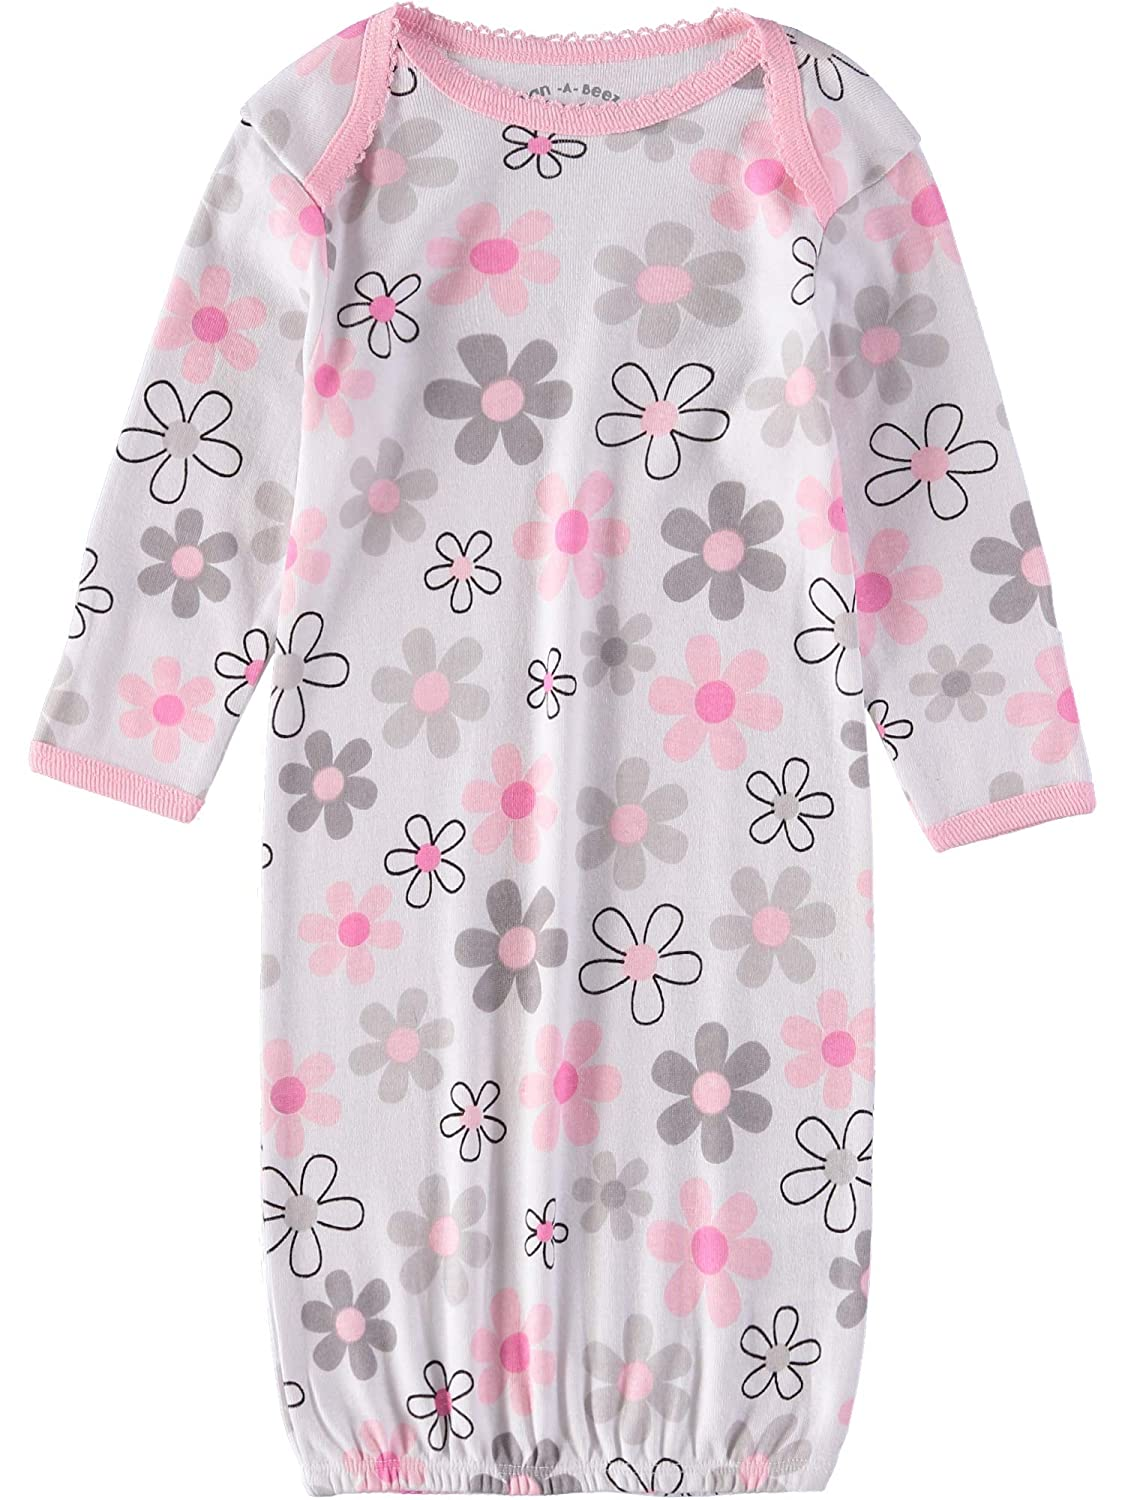 Wan-A-Beez Baby Boys and Girls 3 Pack Printed Gowns